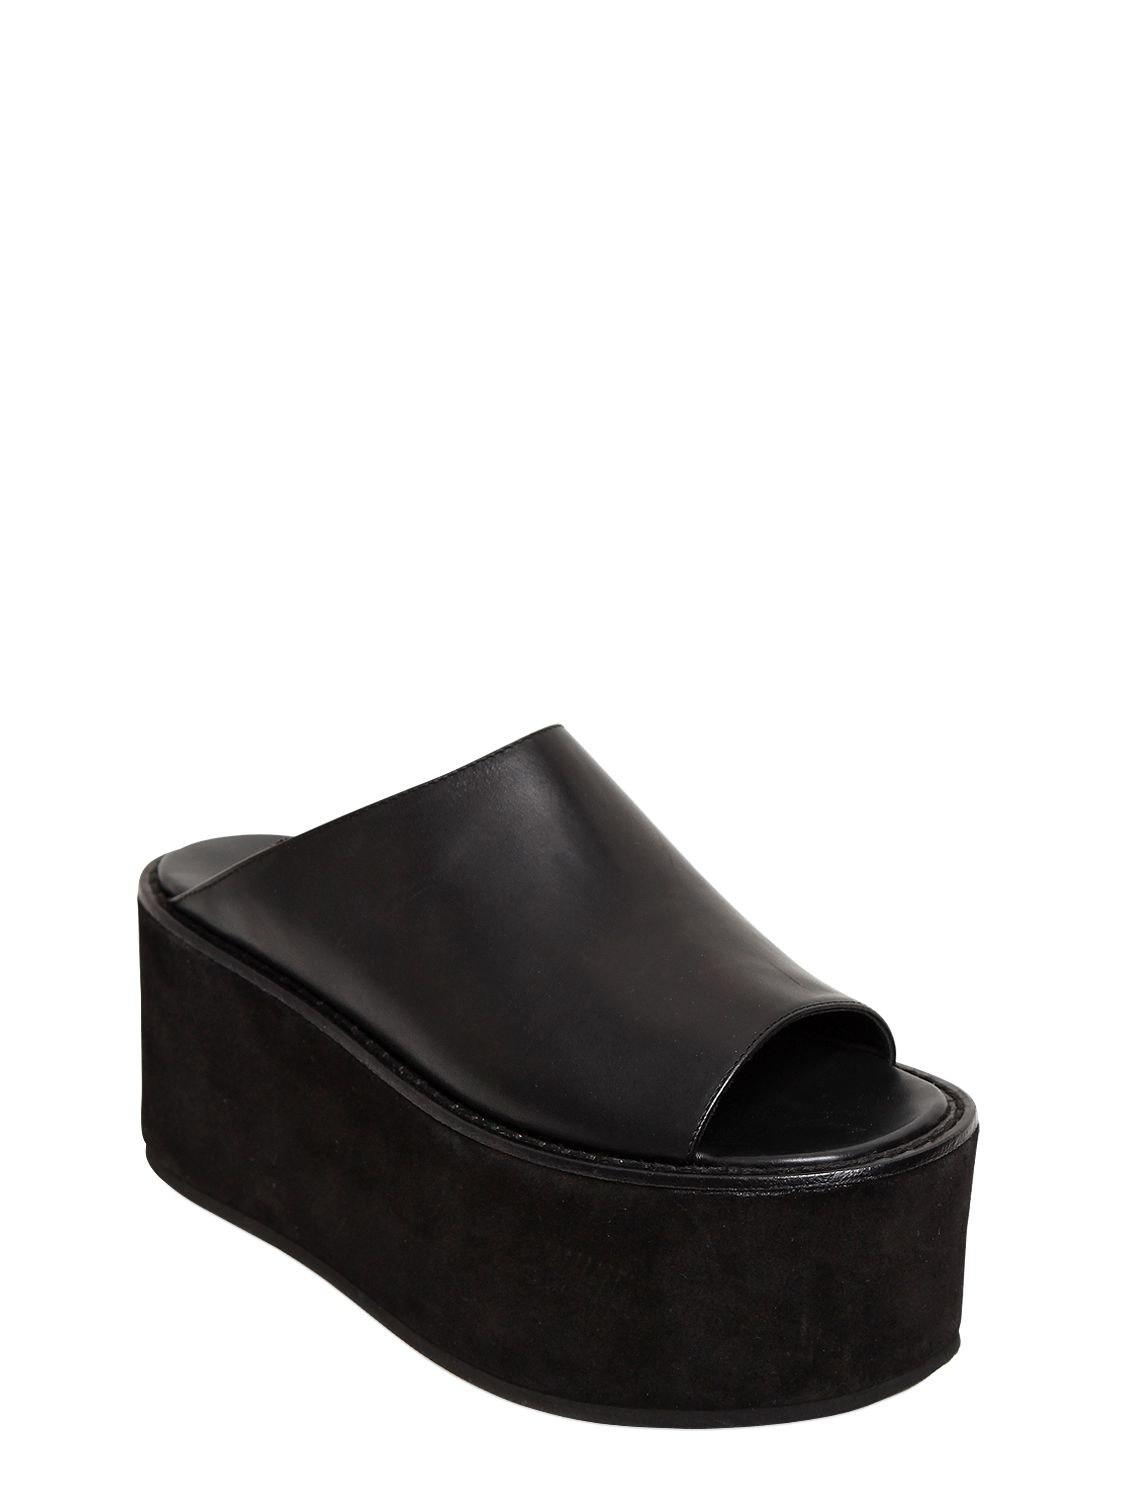 ANN DEMEULEMEESTER 85MM LEATHER PLATFORM MULES 3LmhNoC